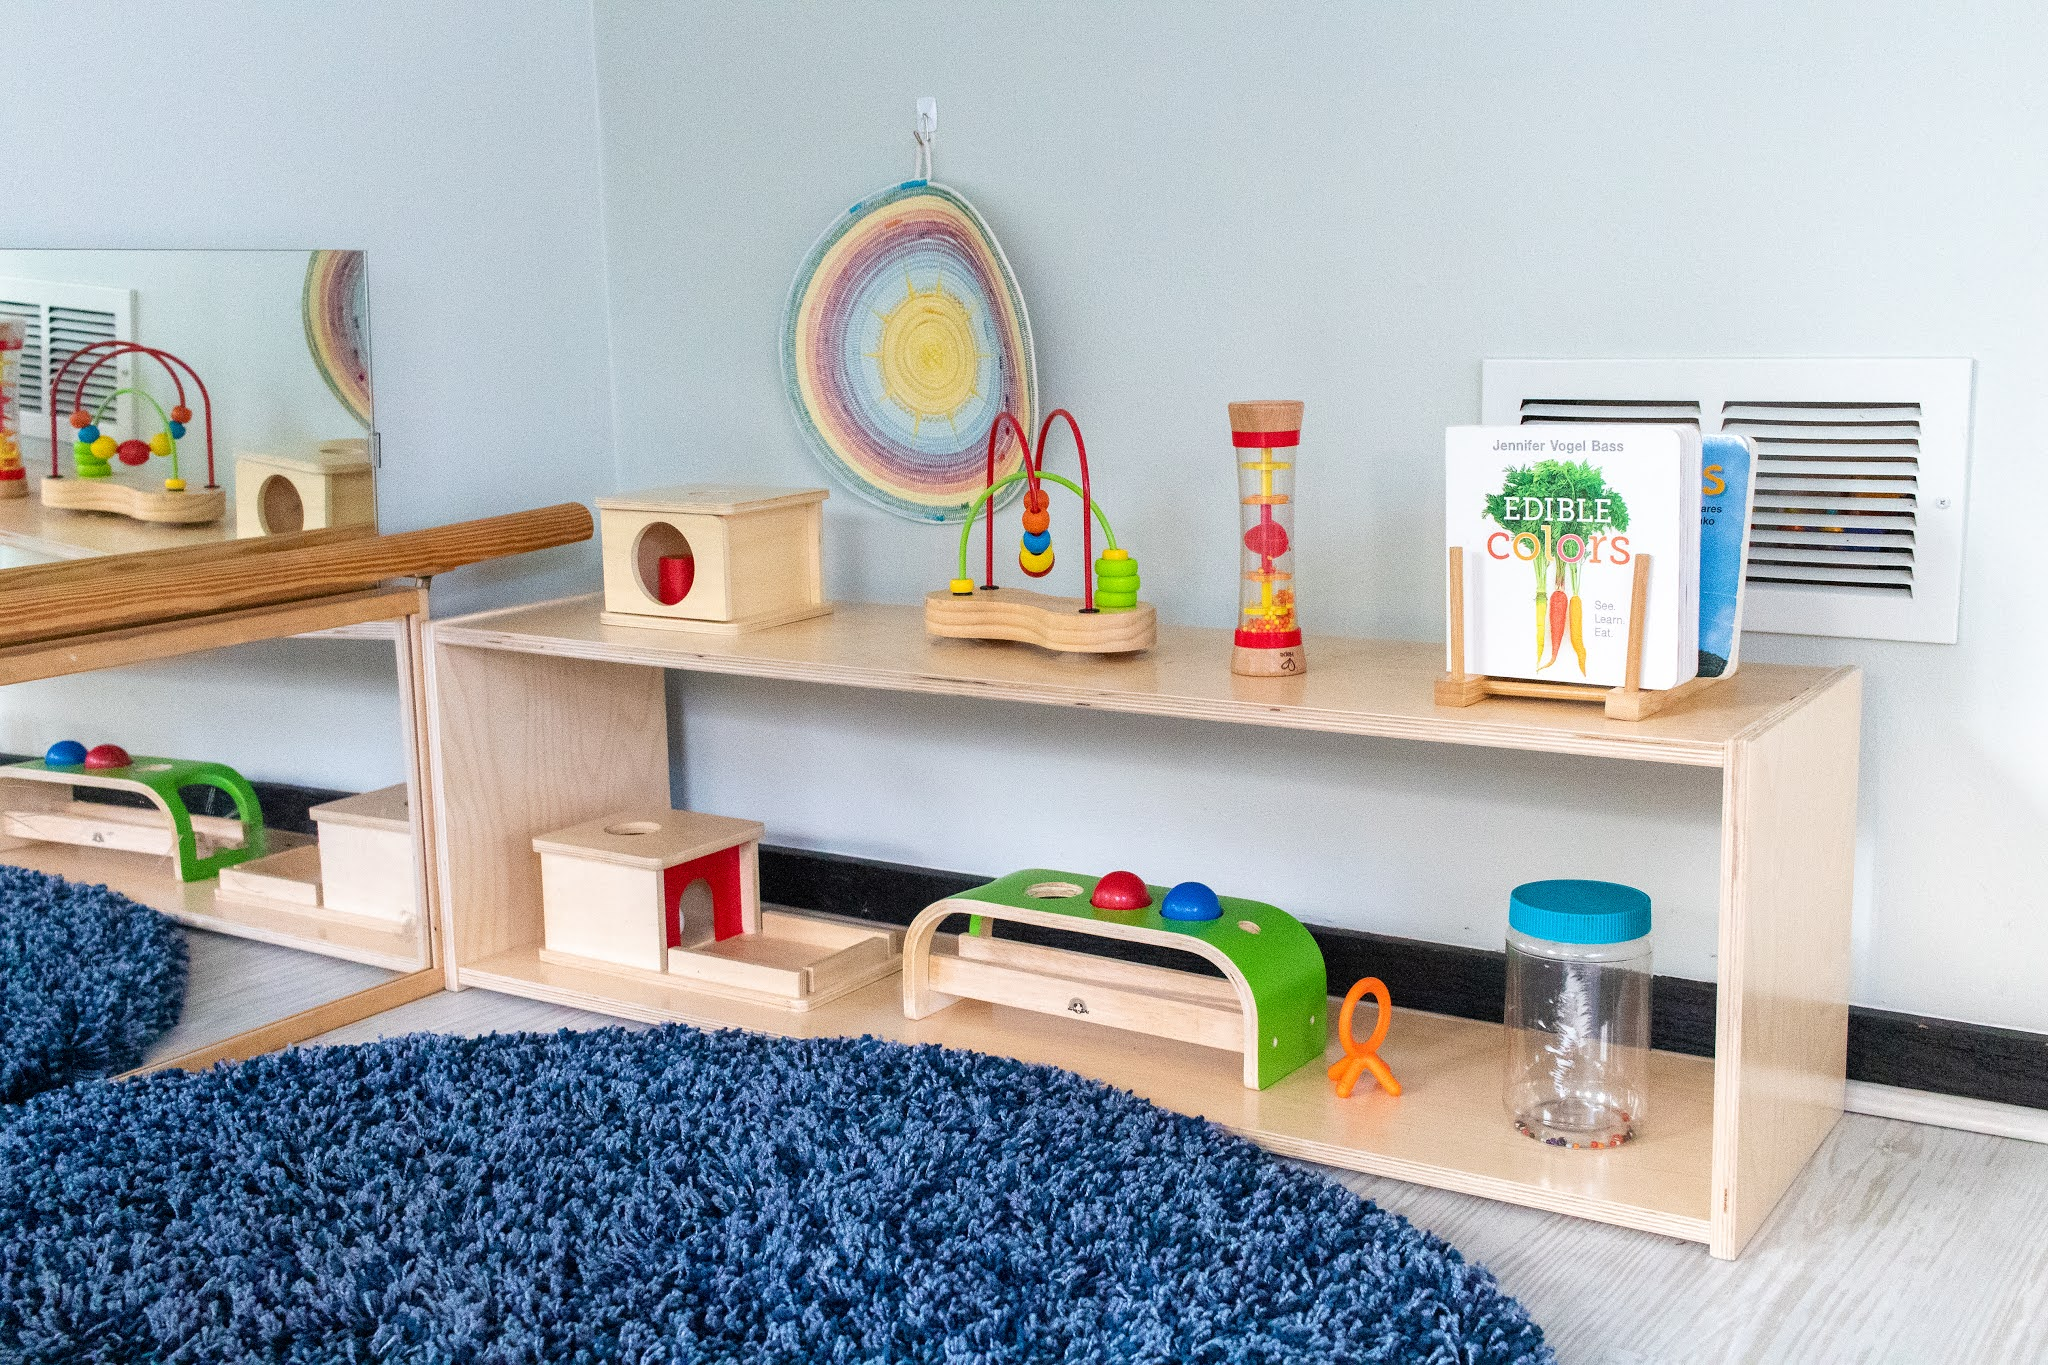 A catalogue of shelves for your Montessori home. If you are getting started with Montessori, these are great options to consider to prepare a space.